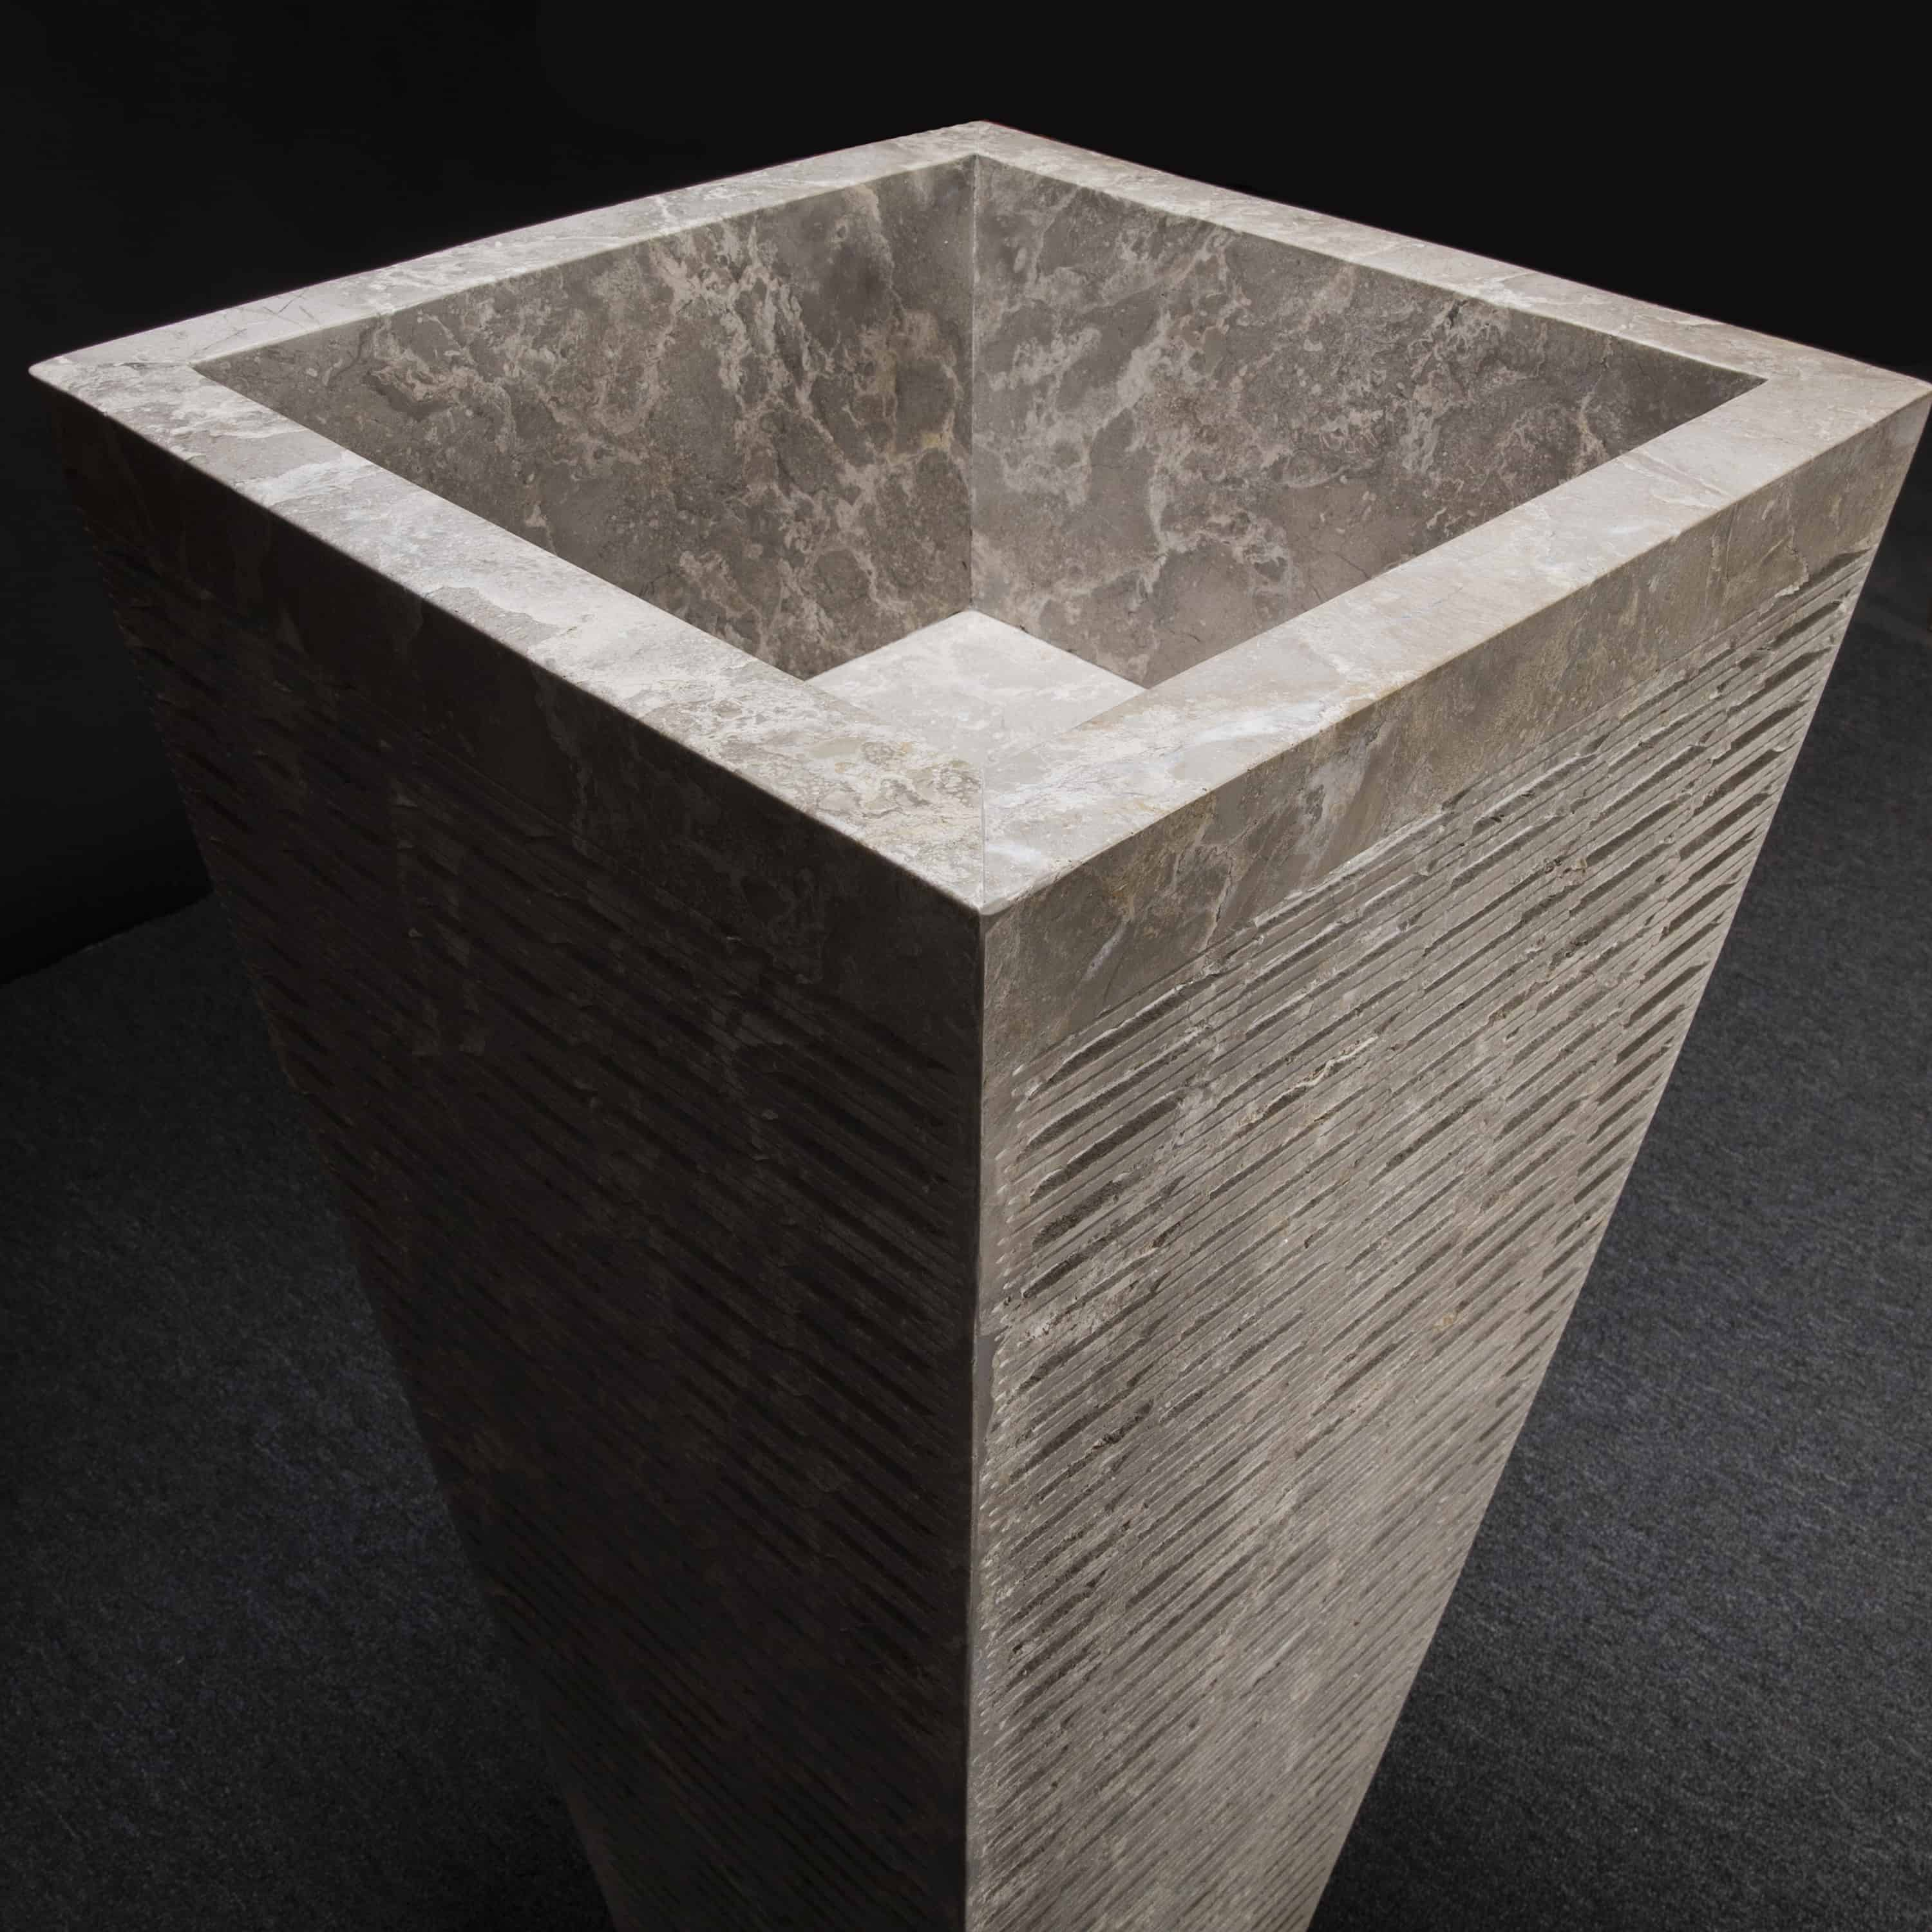 Home Decor Accessories: Marble Pedestal Sink, Square Tapered